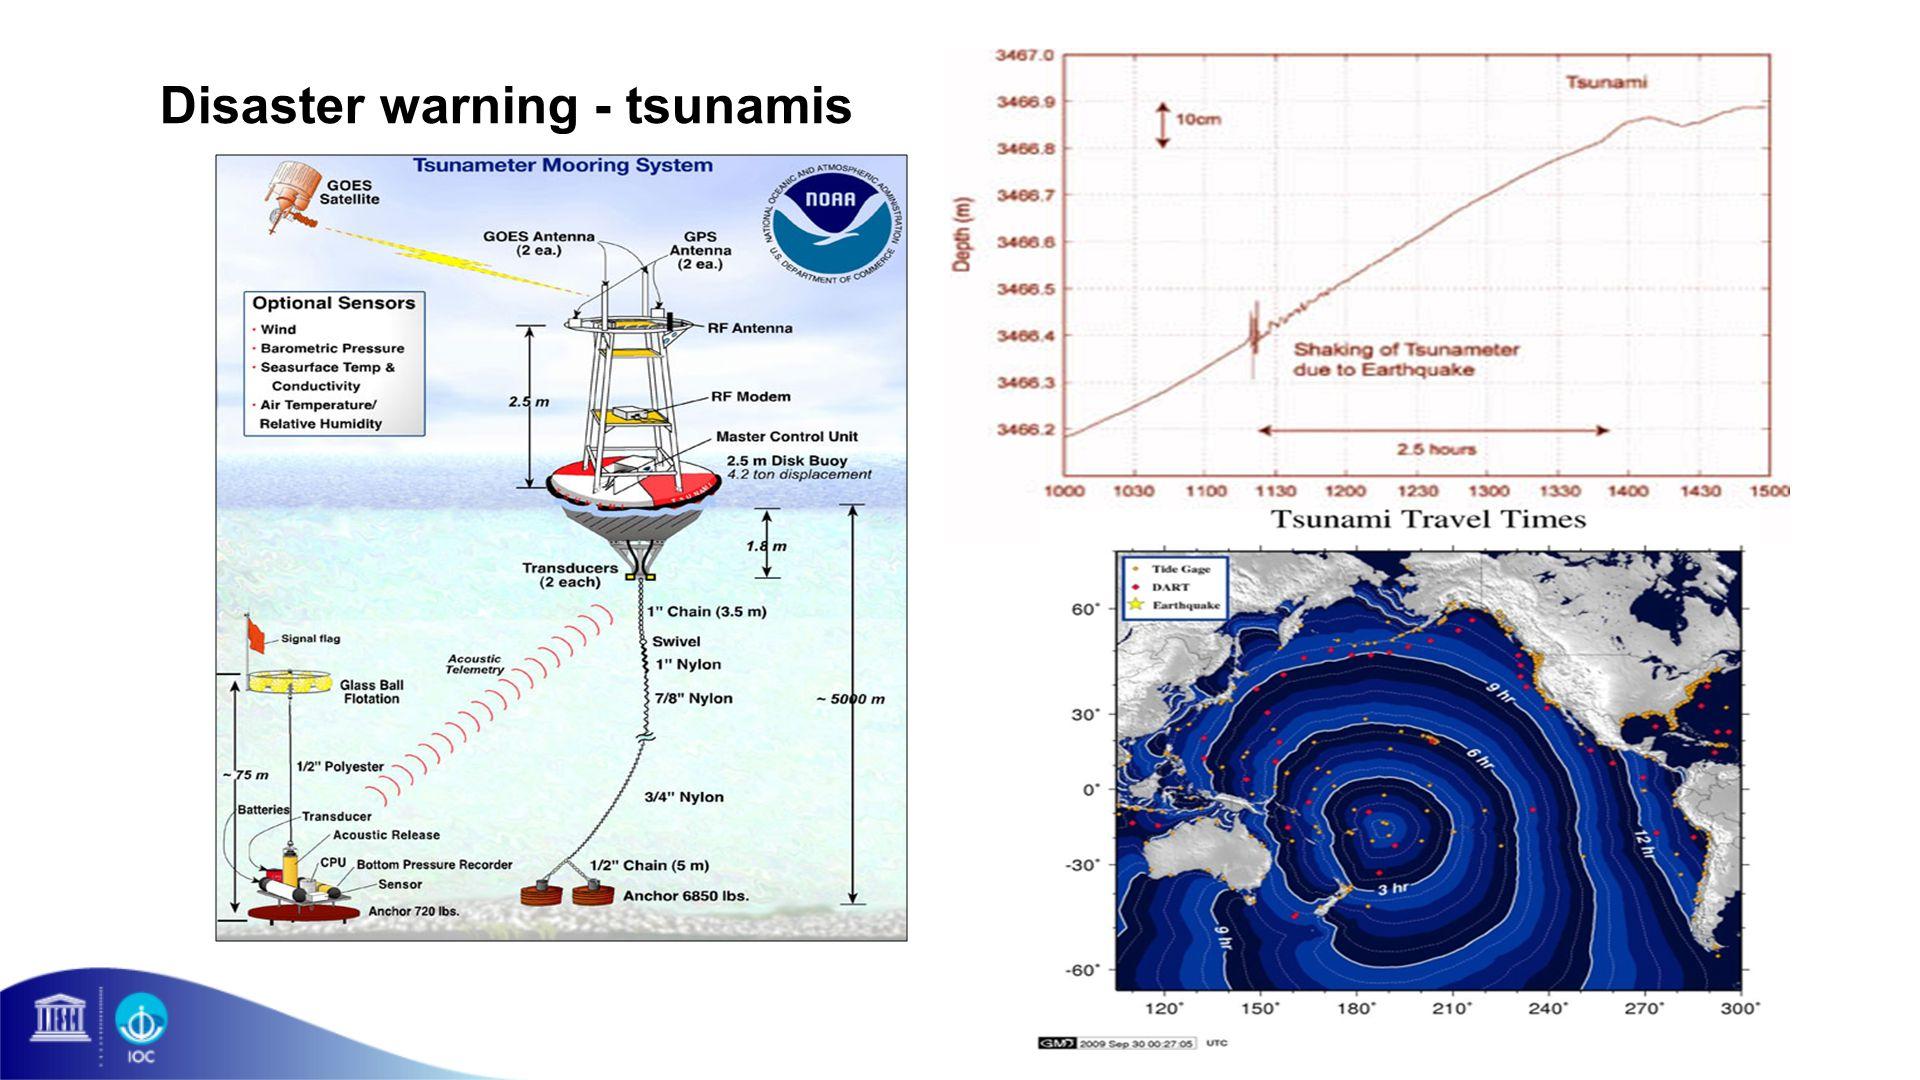 Disaster warning - tsunamis